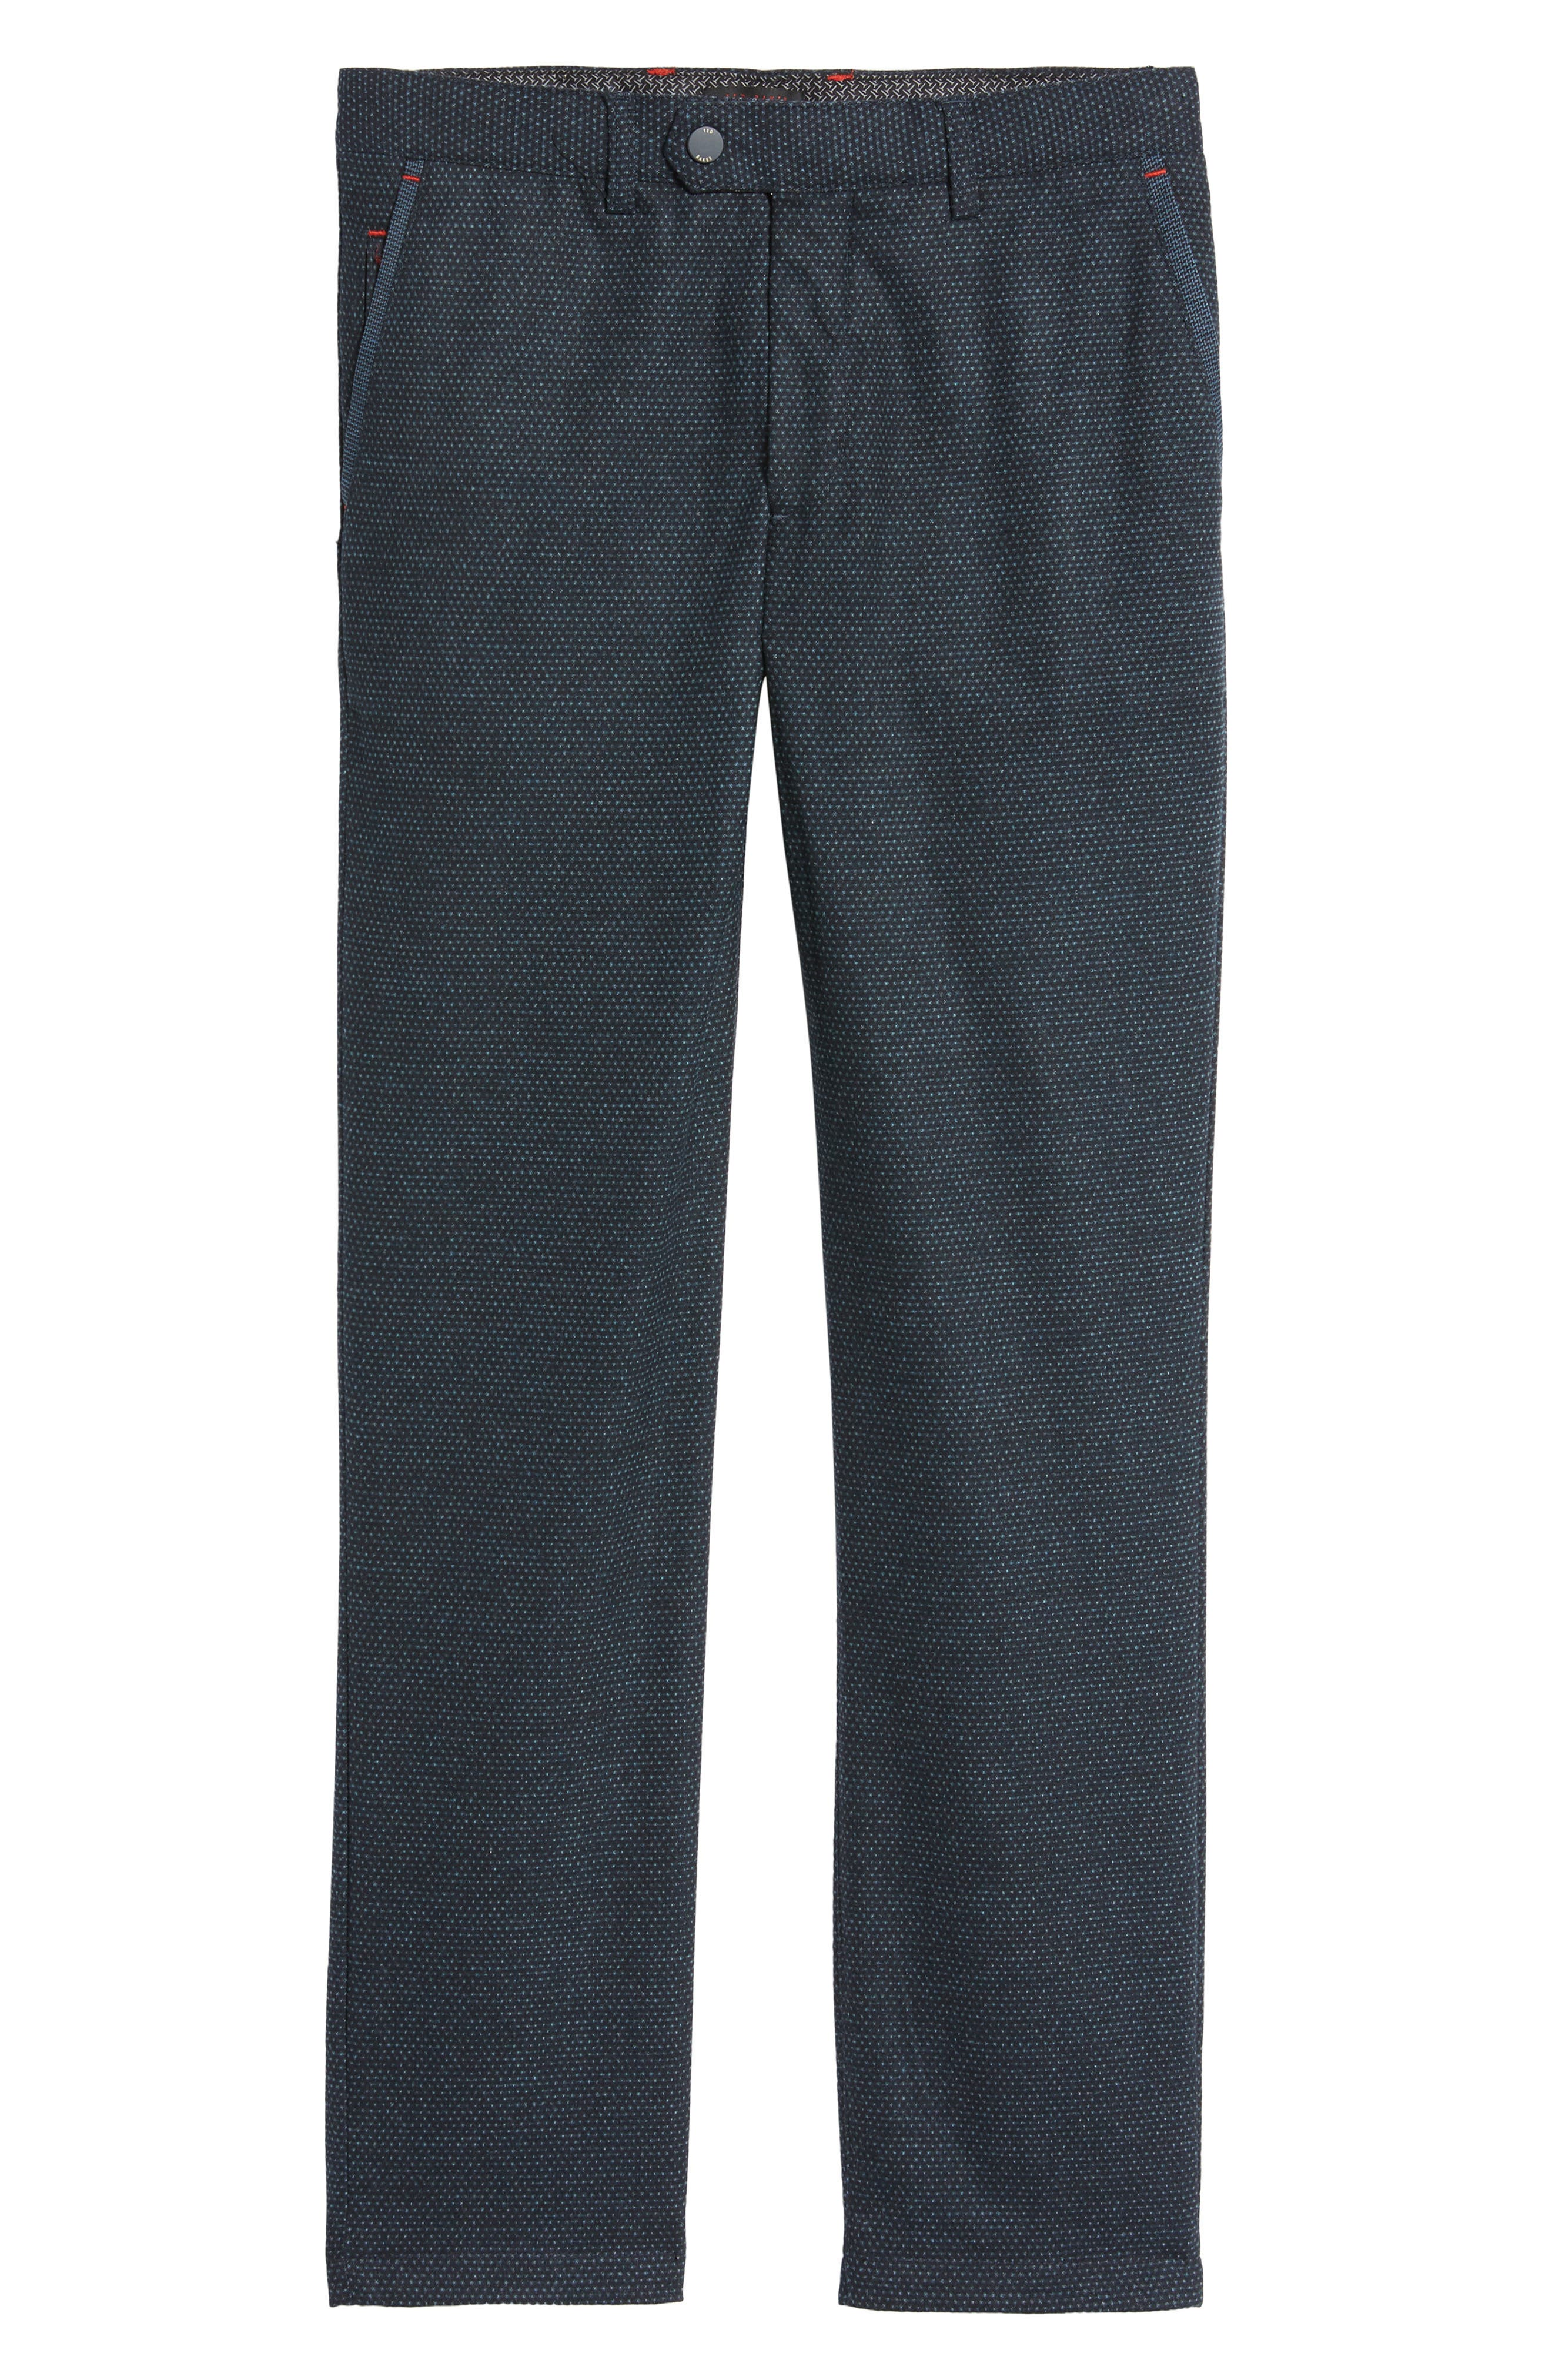 Water Resistant Golf Trousers,                             Alternate thumbnail 6, color,